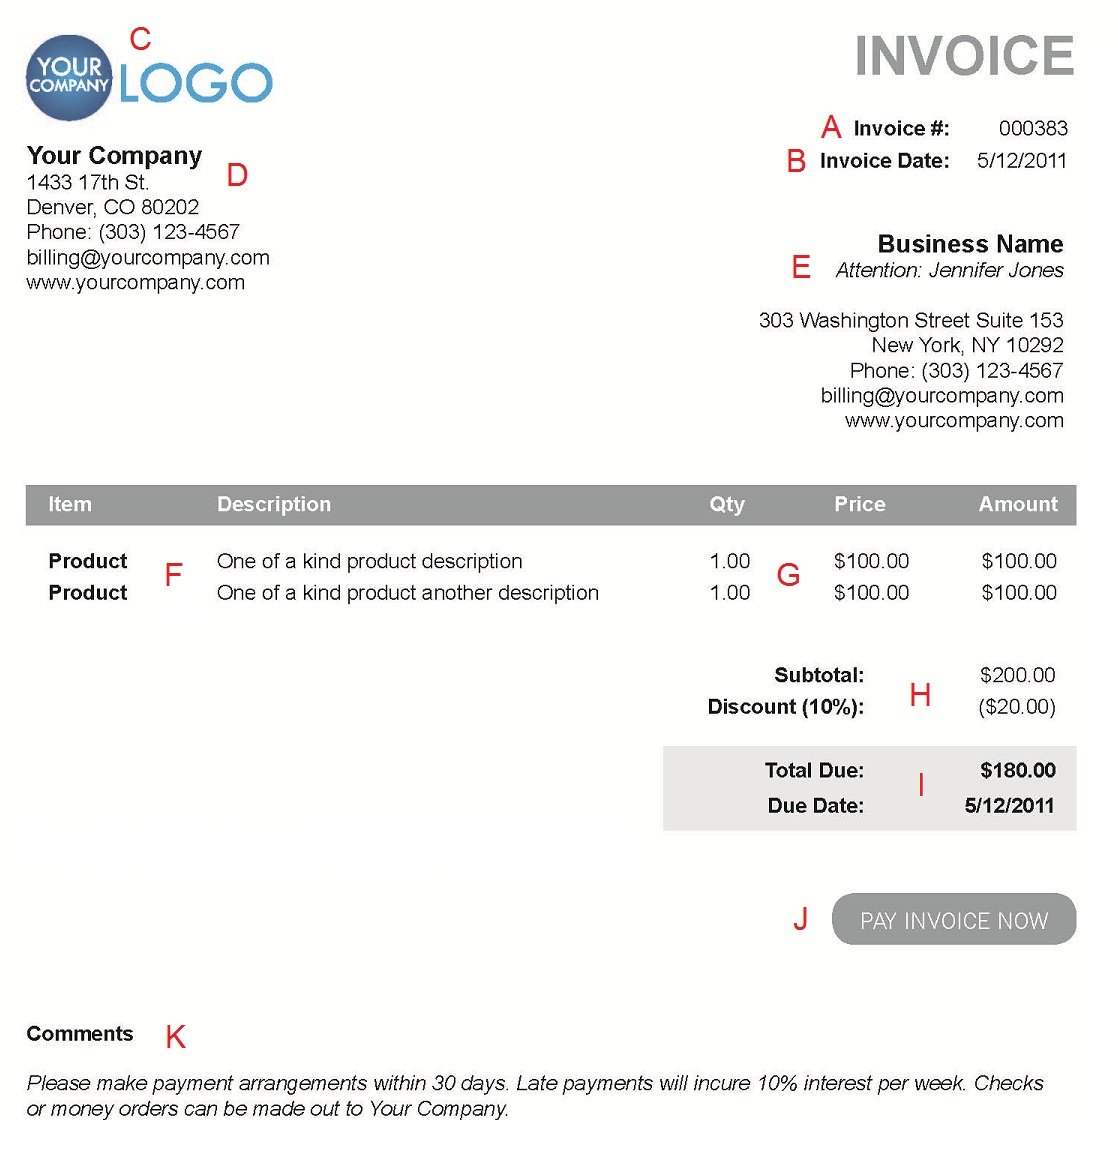 Coolmathgamesus  Fascinating The  Different Sections Of An Electronic Payment Invoice With Lovely A  With Beautiful Receipt For Shepards Pie Also Sample Receipt For Cash In Addition Toys R Us No Receipt And Receipt Template Word Document As Well As Find Receipts Additionally Lost My Post Office Receipt From Paysimplecom With Coolmathgamesus  Lovely The  Different Sections Of An Electronic Payment Invoice With Beautiful A  And Fascinating Receipt For Shepards Pie Also Sample Receipt For Cash In Addition Toys R Us No Receipt From Paysimplecom